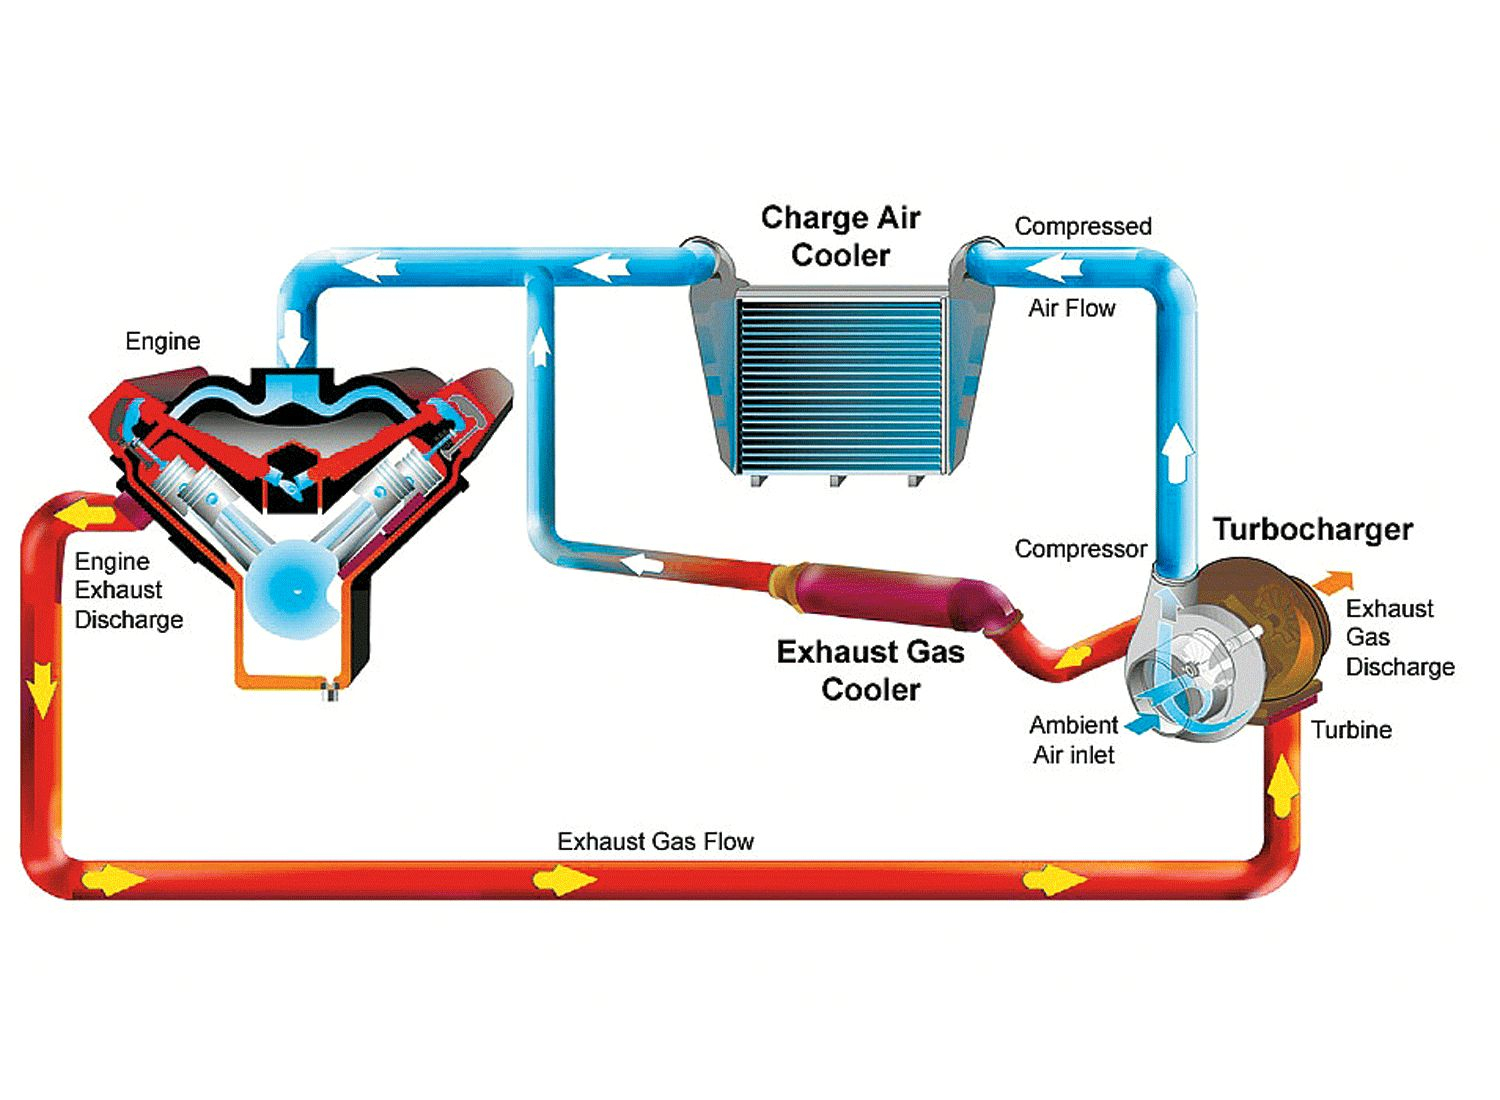 Sequential Twin Turbo Diagram November 2013 Basic Training - Turbochargers  How They Work - Diesel - PakWheels Blog | Twin Turbo Engine Diagram |  | PakWheels